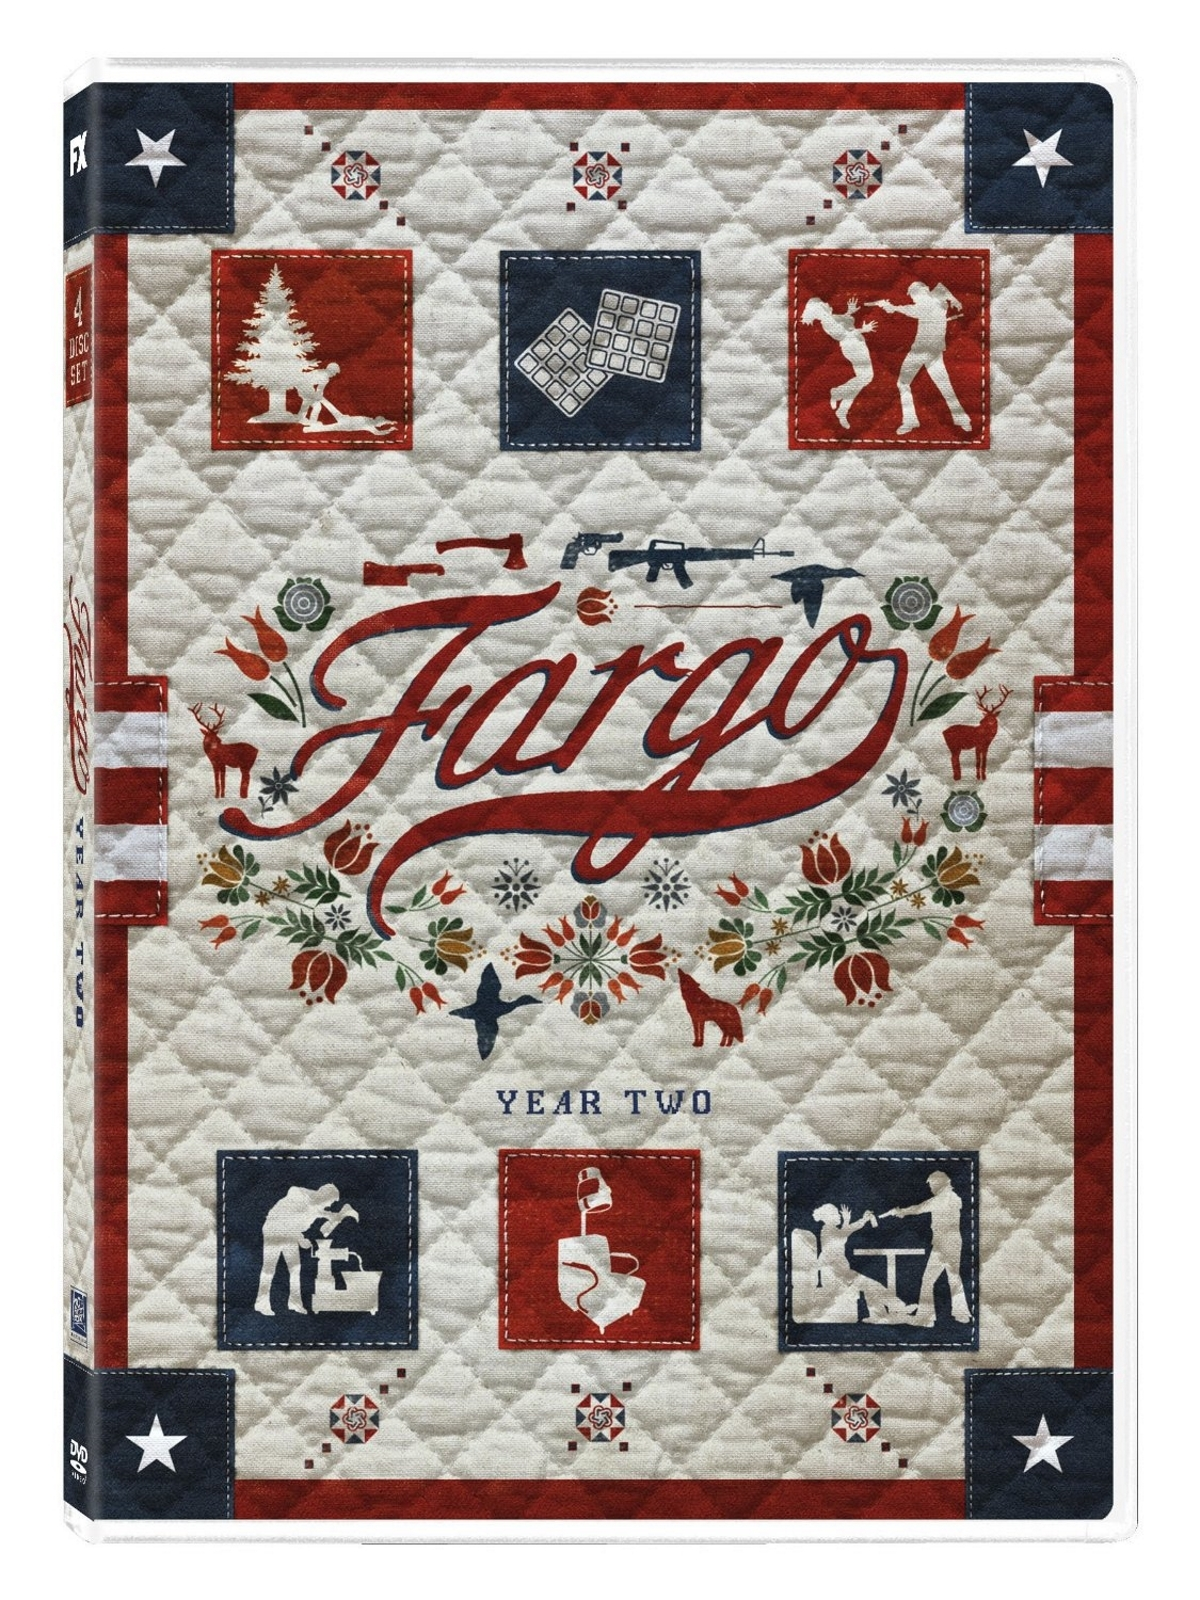 Fargo second season two 2  dvd  2016 4 disc  dunst  danson